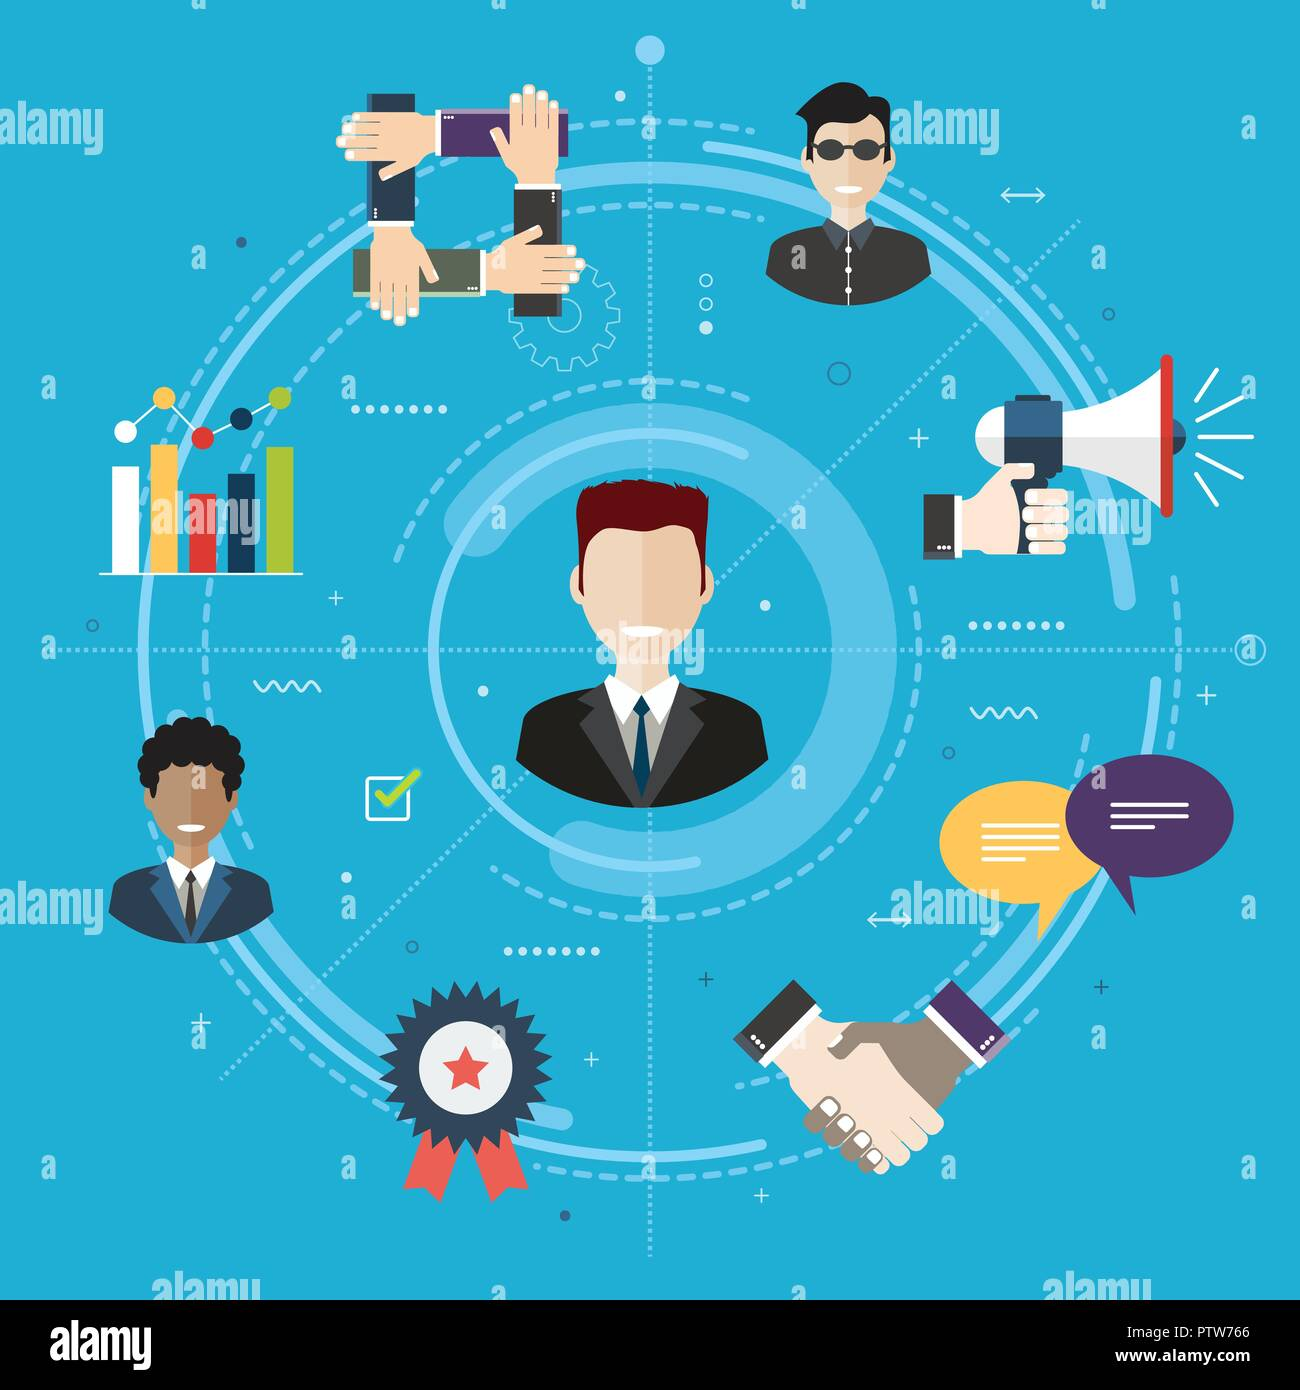 Care in business management and quality of service delivery. Evaluation and after sales support of the product purchase. Customer relationship concept - Stock Vector